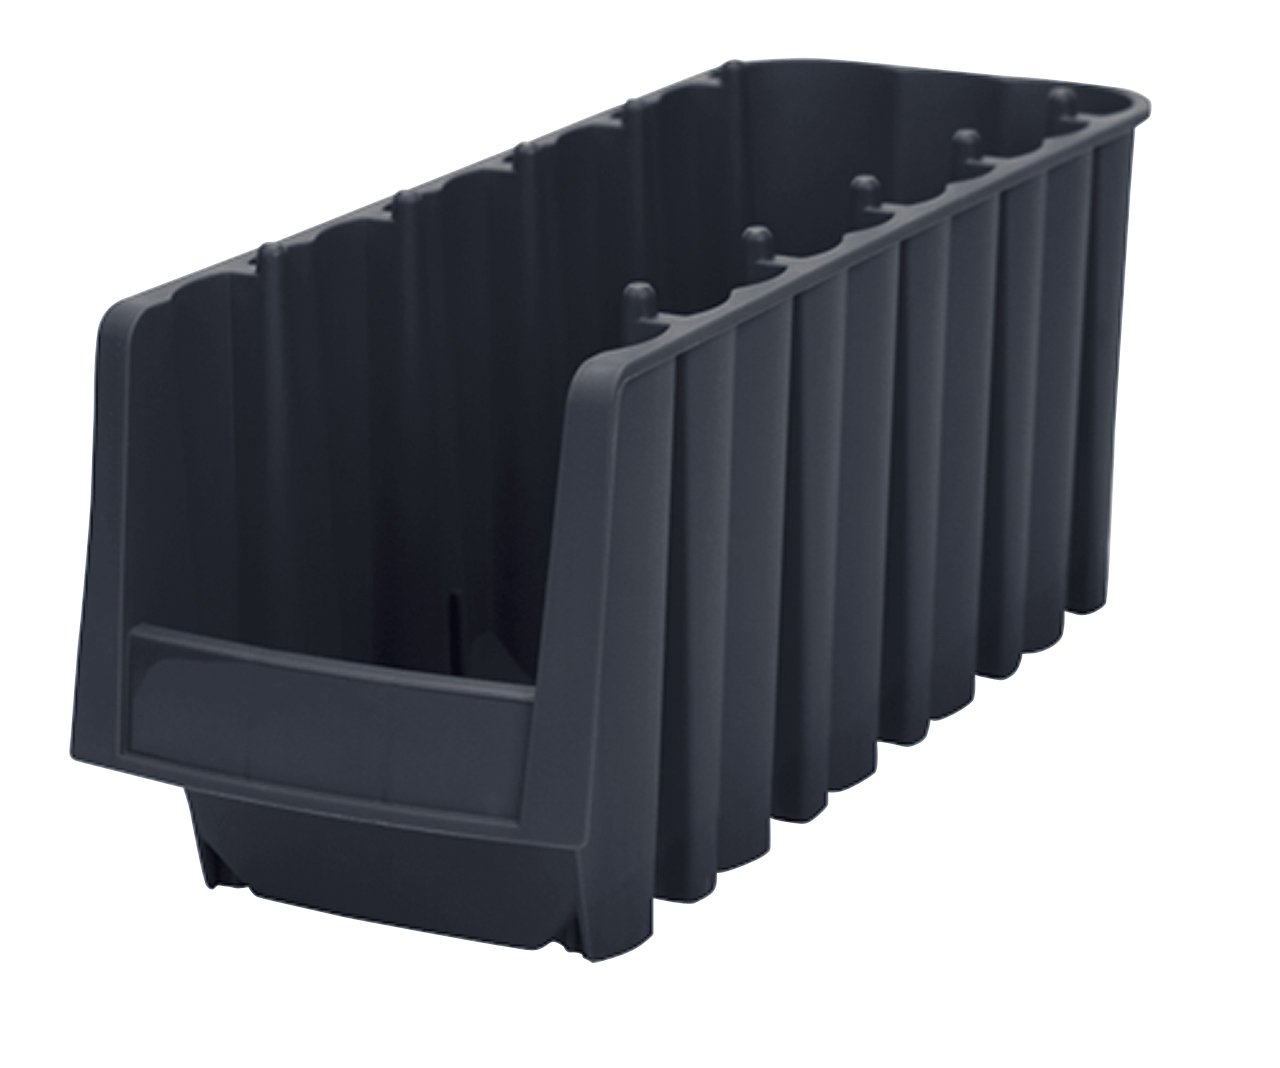 Akro-Mils 30718 Economy Stacking Nesting Plastic Storage Bin, 11-7/8-Inch Long by 8-3/8-Inch Wide by 5-Inch High, Black, Case of 8 by Akro-Mils